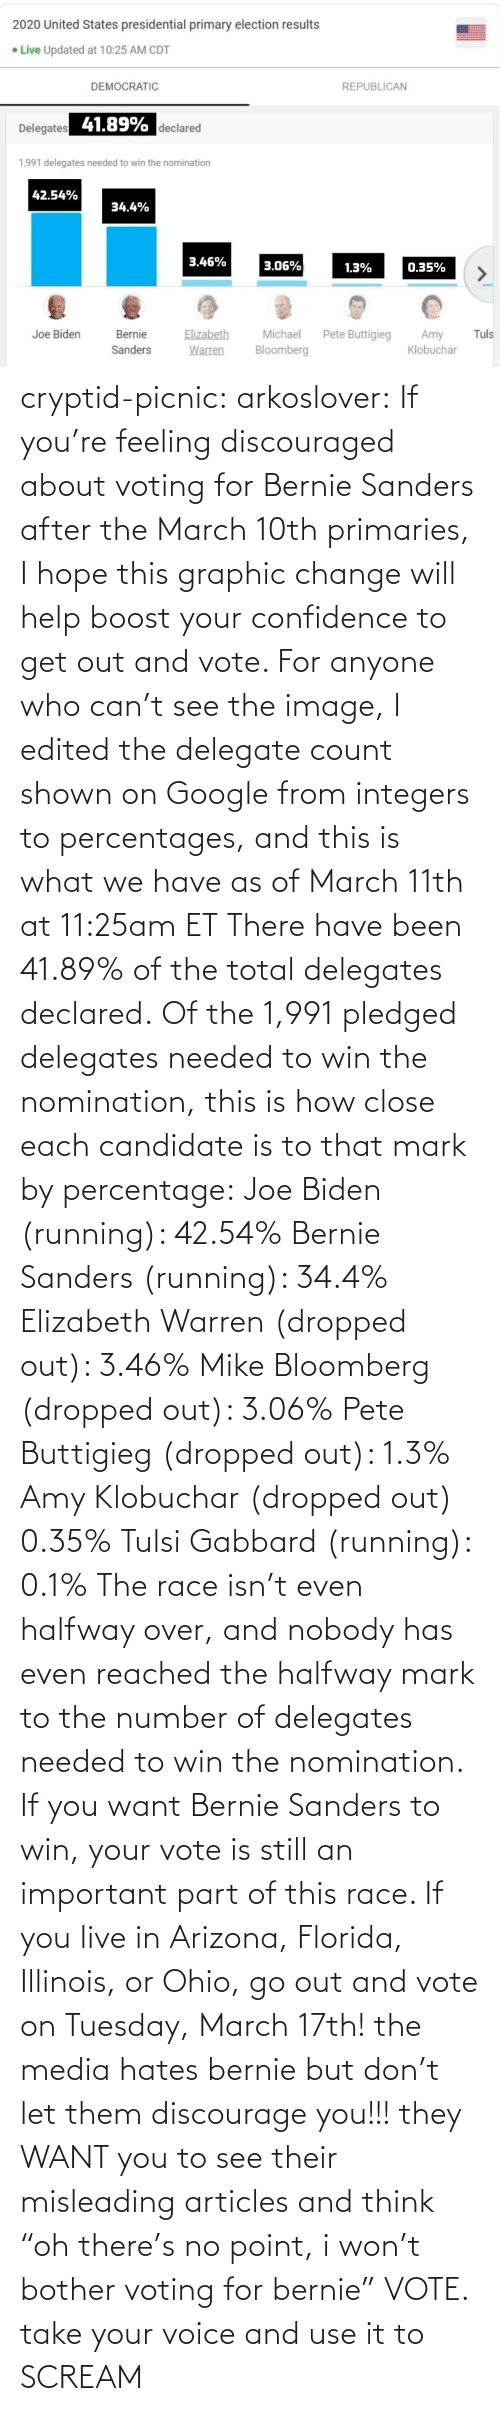 "elizabeth: cryptid-picnic: arkoslover:   If you're feeling discouraged about voting for Bernie Sanders after the March 10th primaries, I hope this graphic change will help boost your confidence to get out and vote. For anyone who can't see the image, I edited the delegate count shown on Google from integers to percentages, and this is what we have as of March 11th at 11:25am ET There have been 41.89% of the total delegates declared. Of the 1,991 pledged delegates needed to win the nomination, this is how close each candidate is to that mark by percentage: Joe Biden (running): 42.54% Bernie Sanders (running): 34.4% Elizabeth Warren (dropped out): 3.46% Mike Bloomberg (dropped out): 3.06% Pete Buttigieg (dropped out): 1.3% Amy Klobuchar (dropped out) 0.35% Tulsi Gabbard (running): 0.1% The race isn't even halfway over, and nobody has even reached the halfway mark to the number of delegates needed to win the nomination. If you want Bernie Sanders to win, your vote is still an important part of this race. If you live in Arizona, Florida, Illinois, or Ohio, go out and vote on Tuesday, March 17th!    the media hates bernie but don't let them discourage you!!! they WANT you to see their misleading articles and think ""oh there's no point, i won't bother voting for bernie"" VOTE. take your voice and use it to SCREAM"